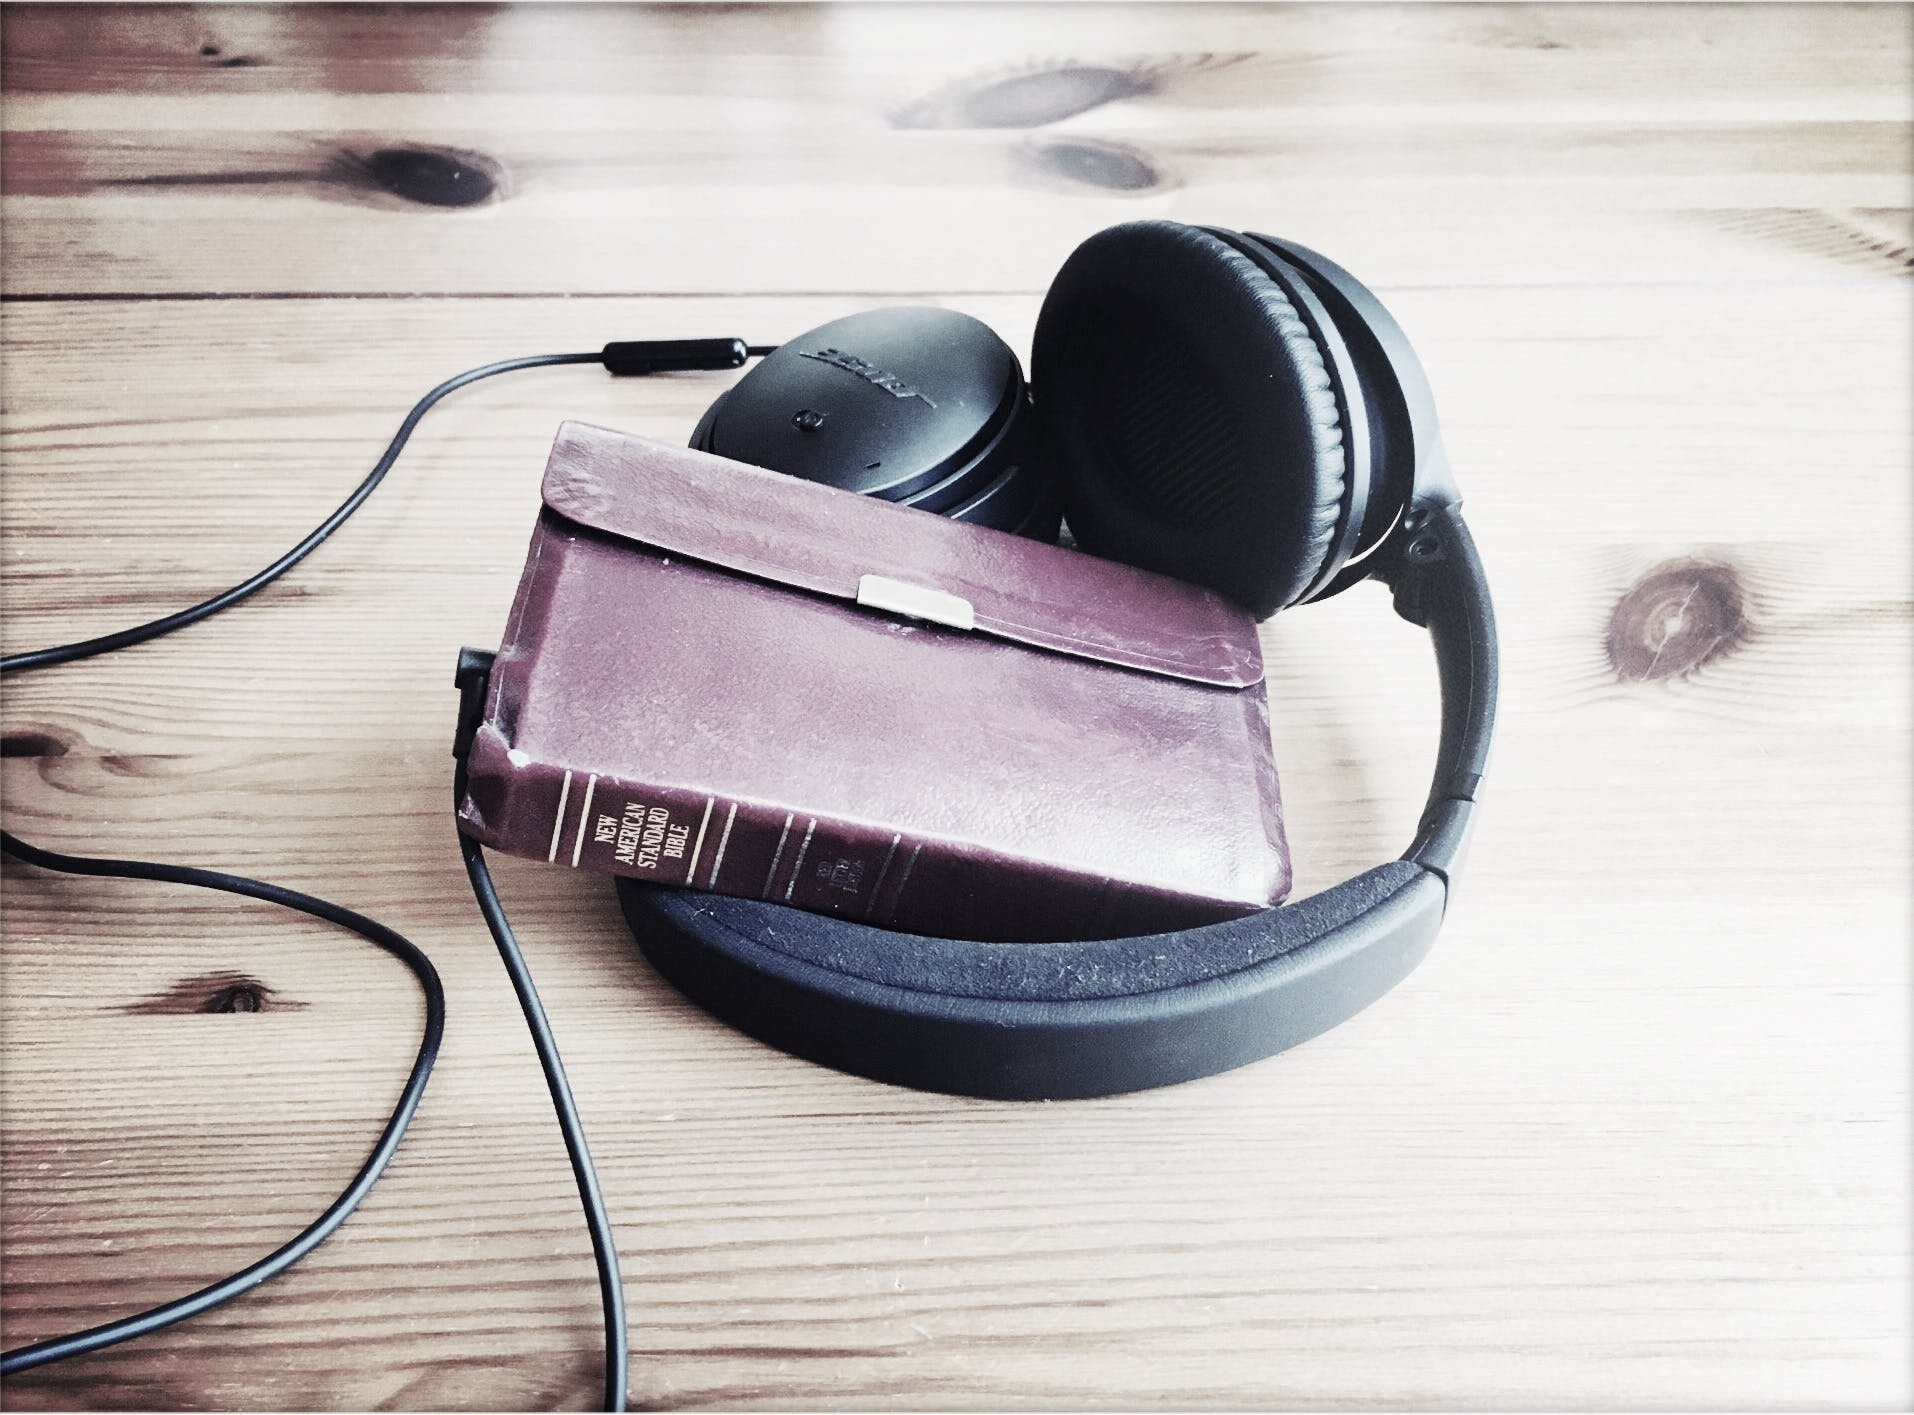 Free stock photo of headphones, bible, head phones, god speaks